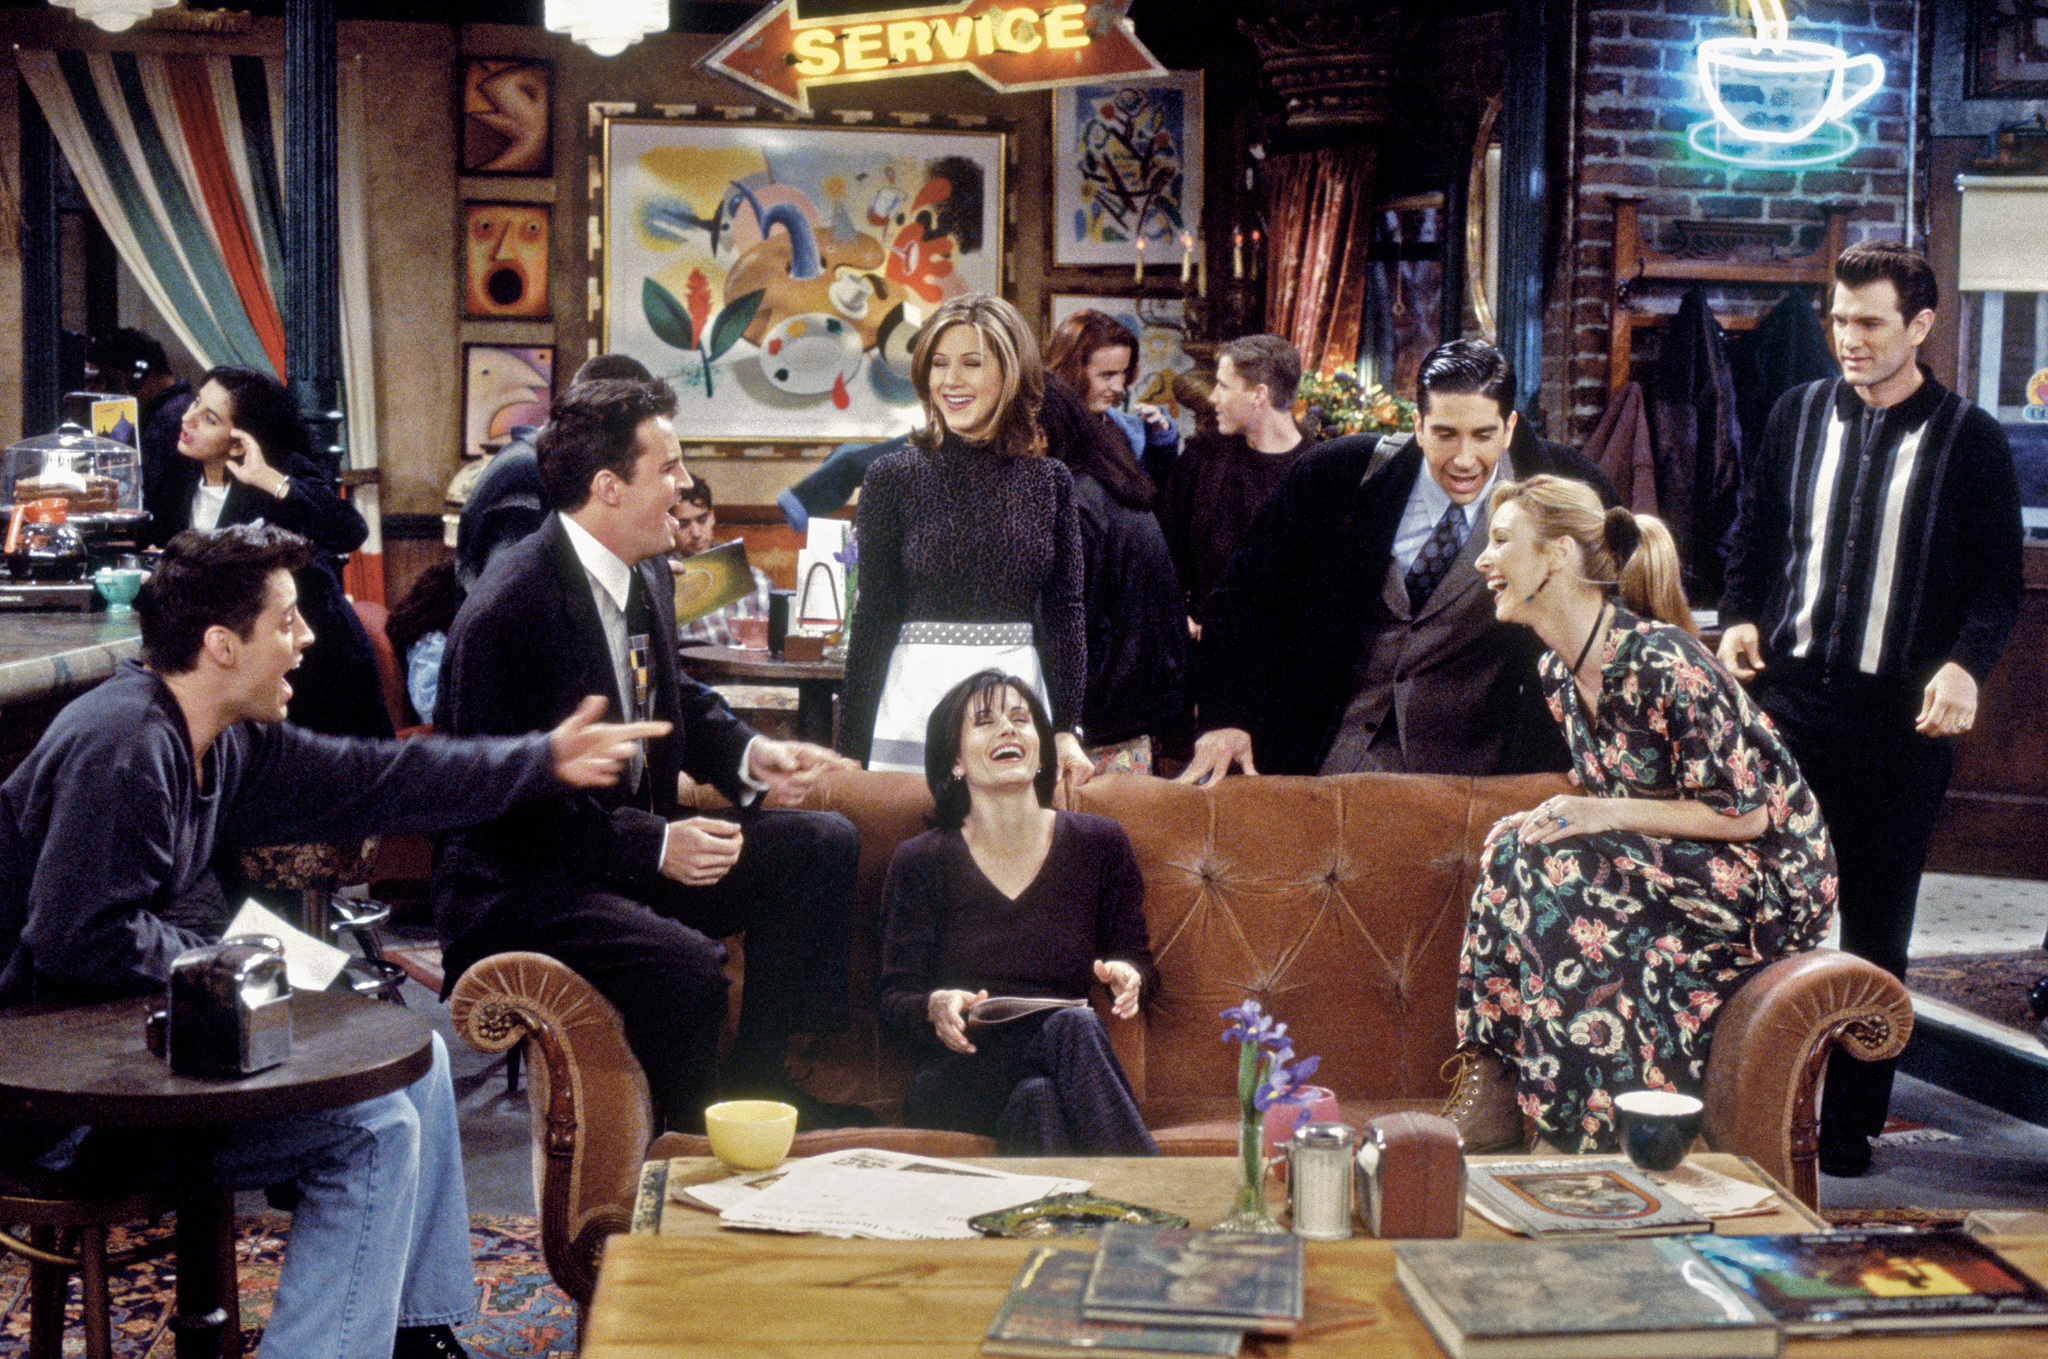 Friends: The One After the Superbowl: Part 1 | Season 2 | Episode 12